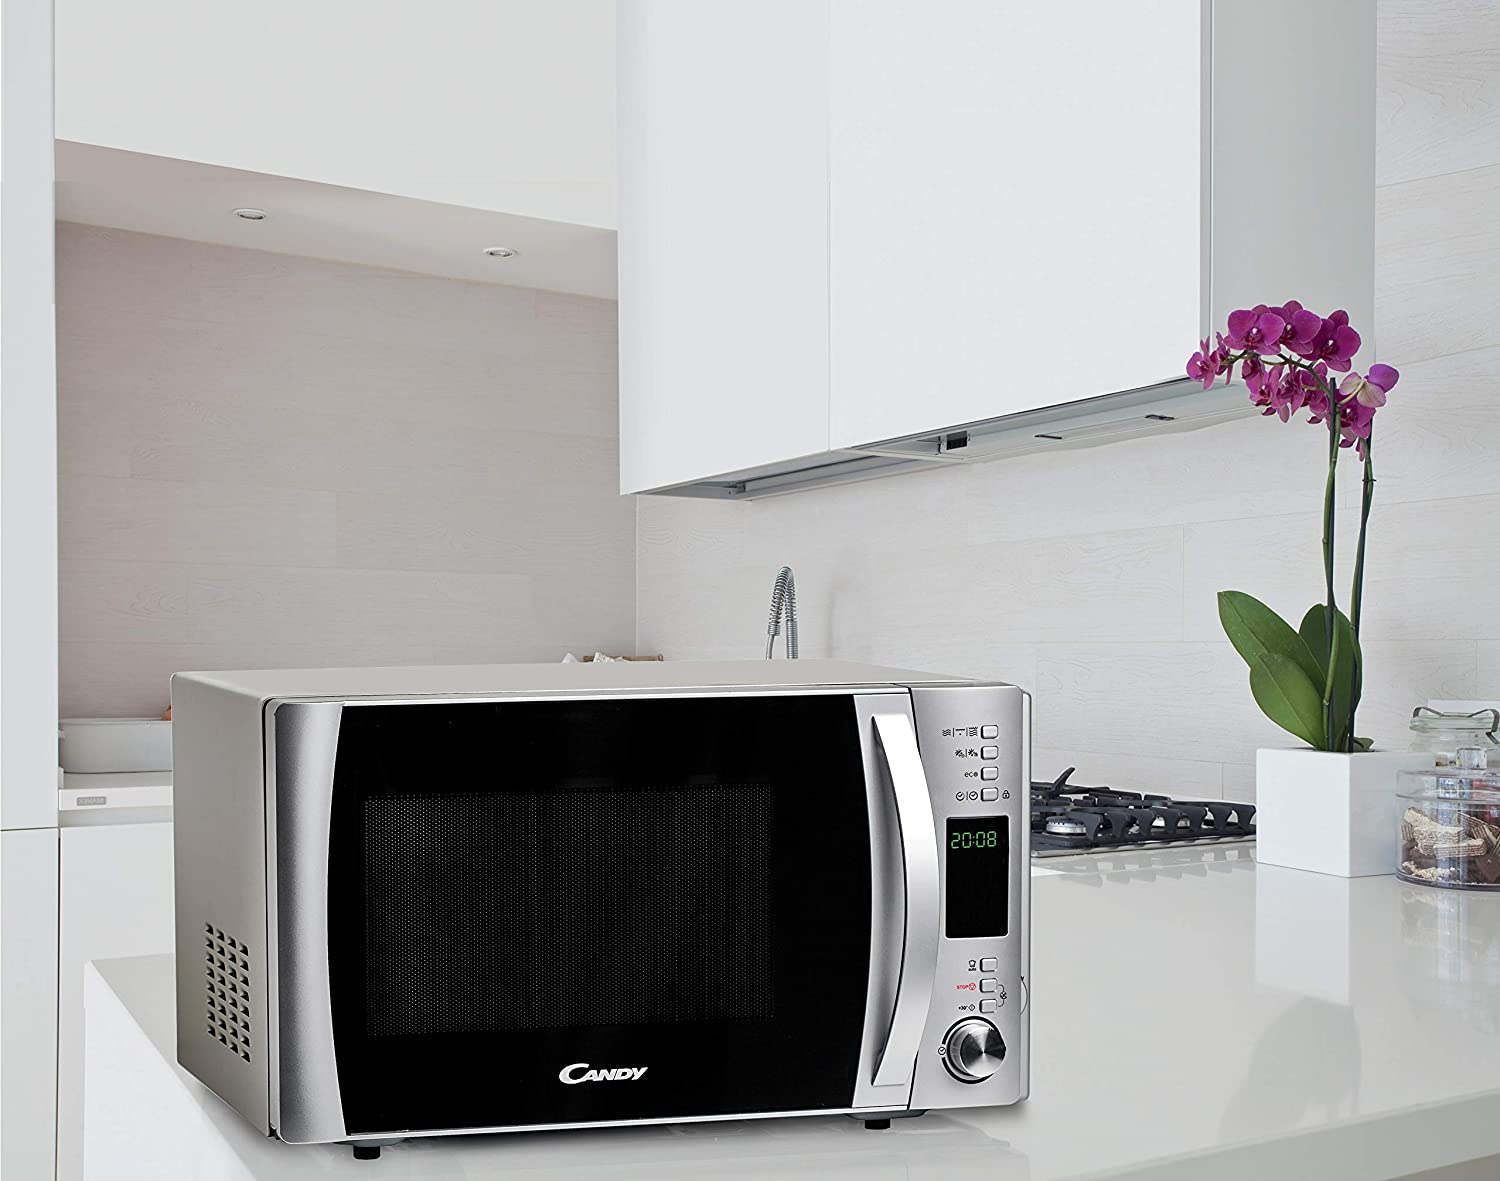 Candy CMXG25DCS - Microondas con grill y cook in app, 25 L, 40 ...